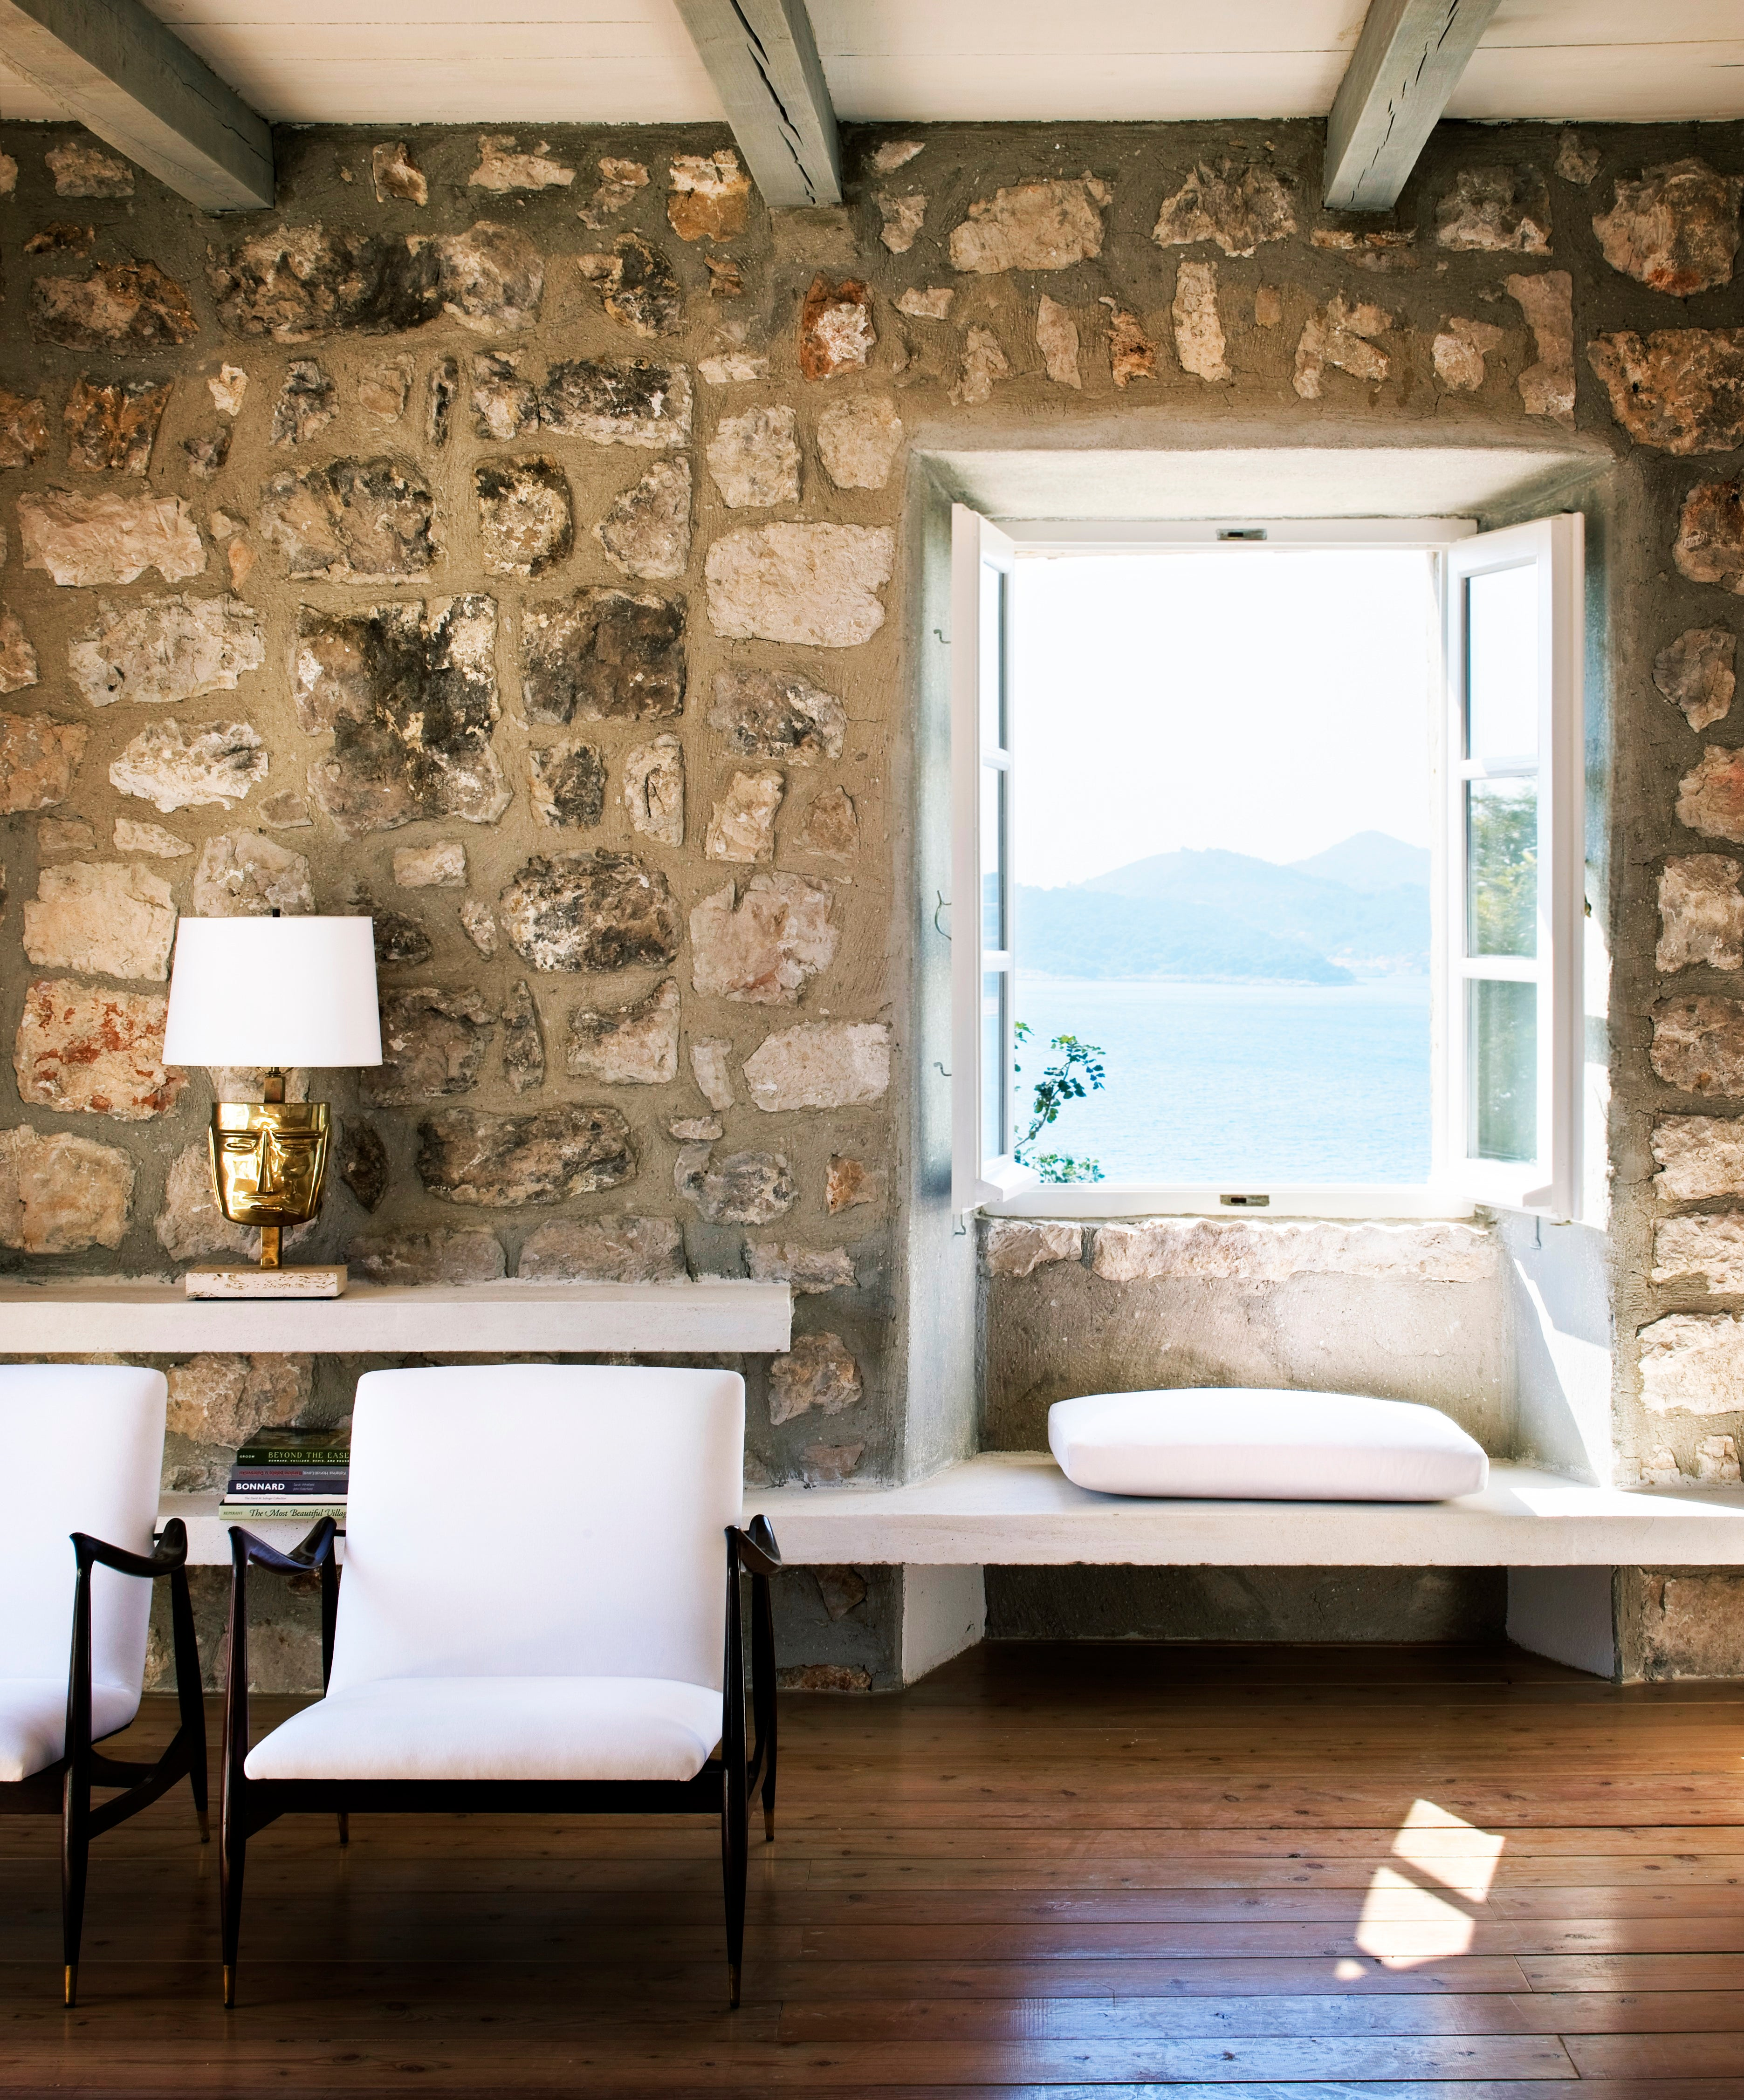 Interior design holiday home - Holiday Home In A Restored 15th Century Building In Croatia